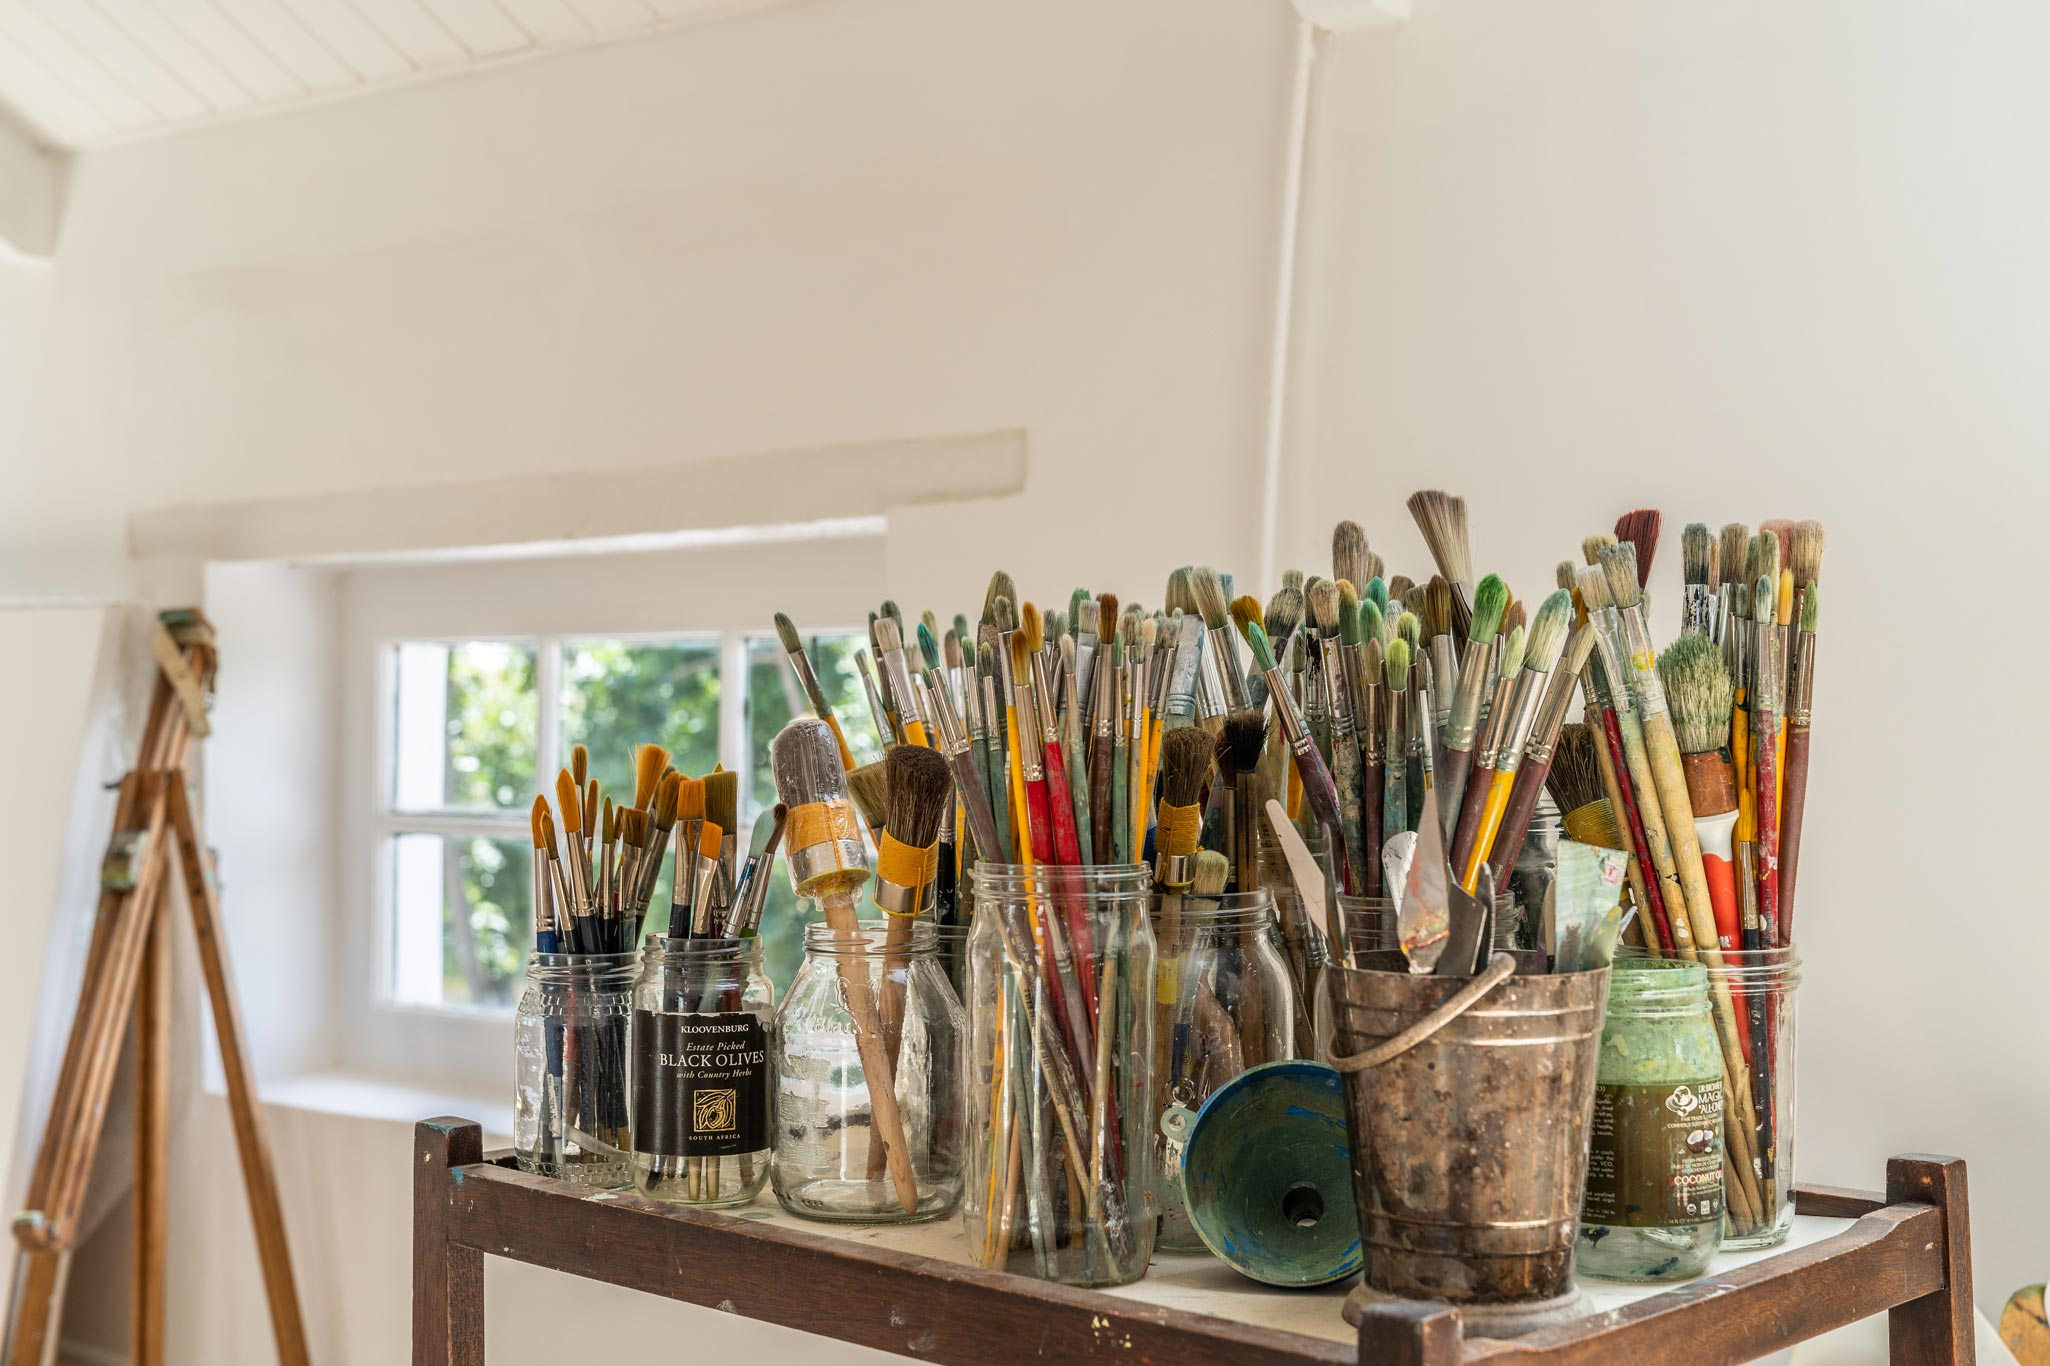 Studio space of South Artist, Jenny Parsons